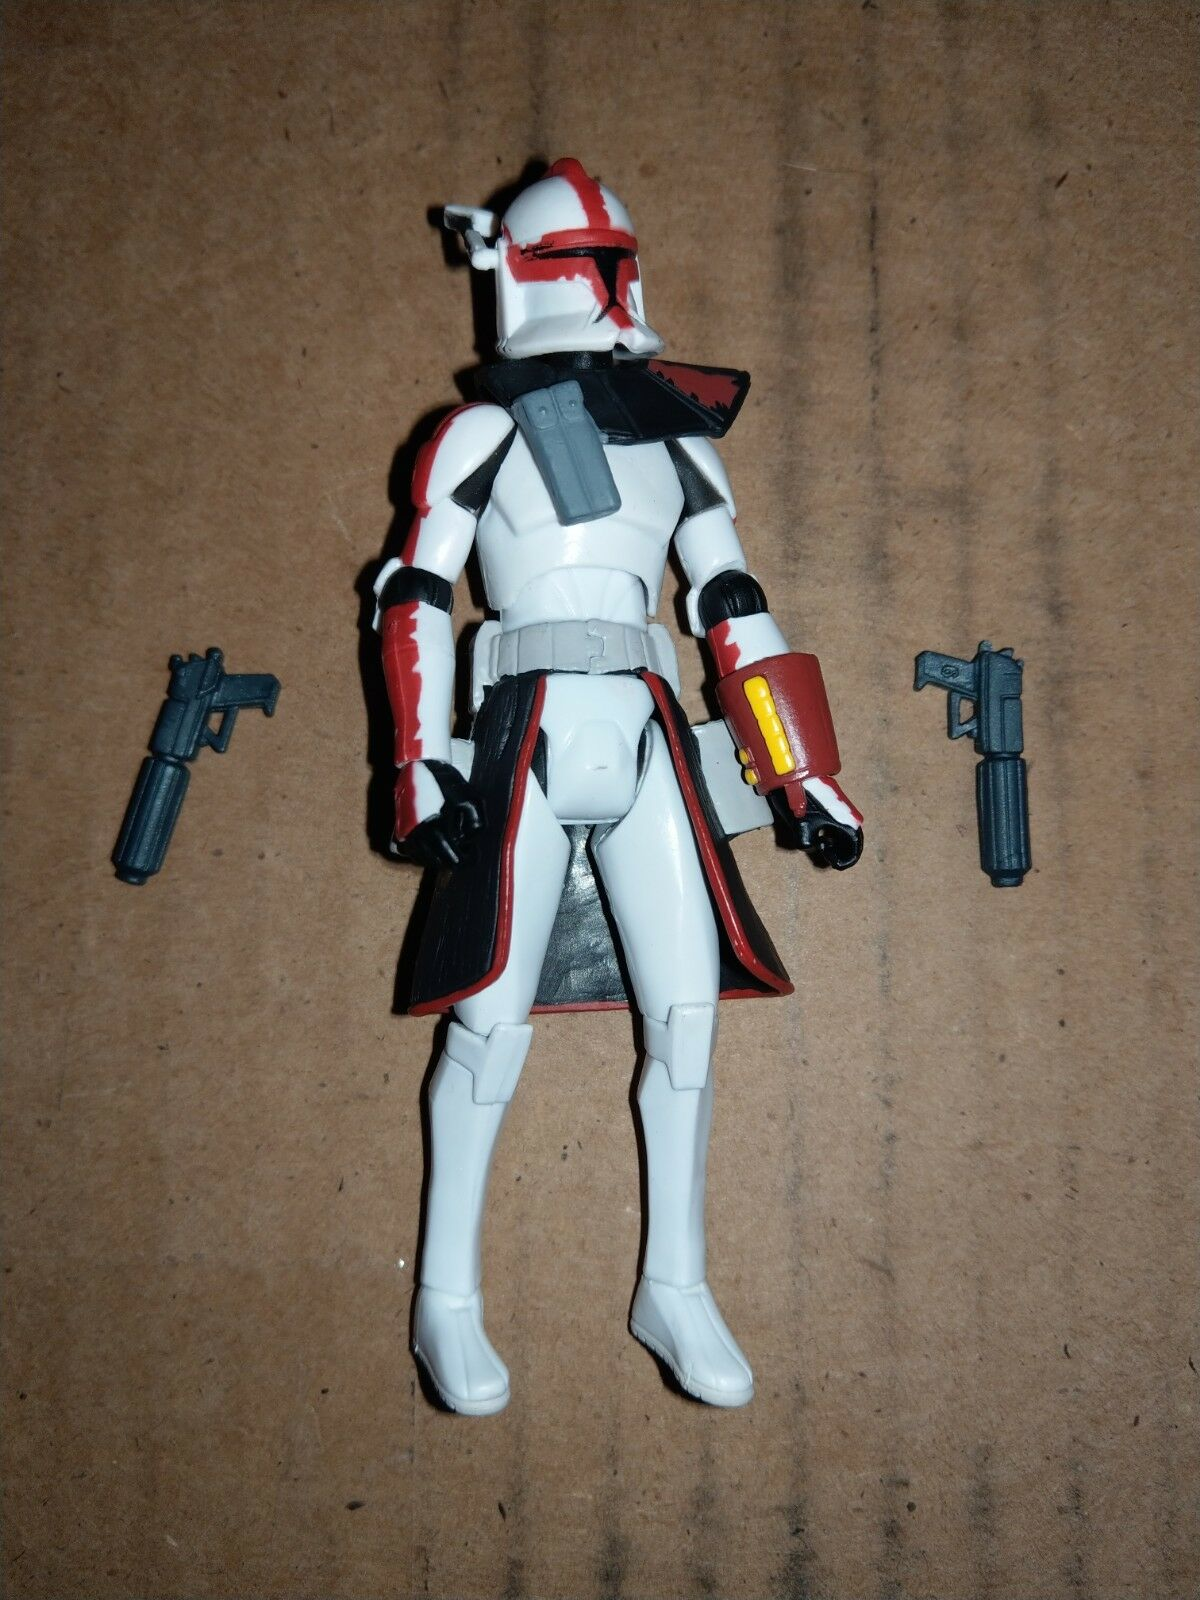 Star Wars Rare ROT ARC Trooper Commander With Blaster Pistols and Arm Gauntlet